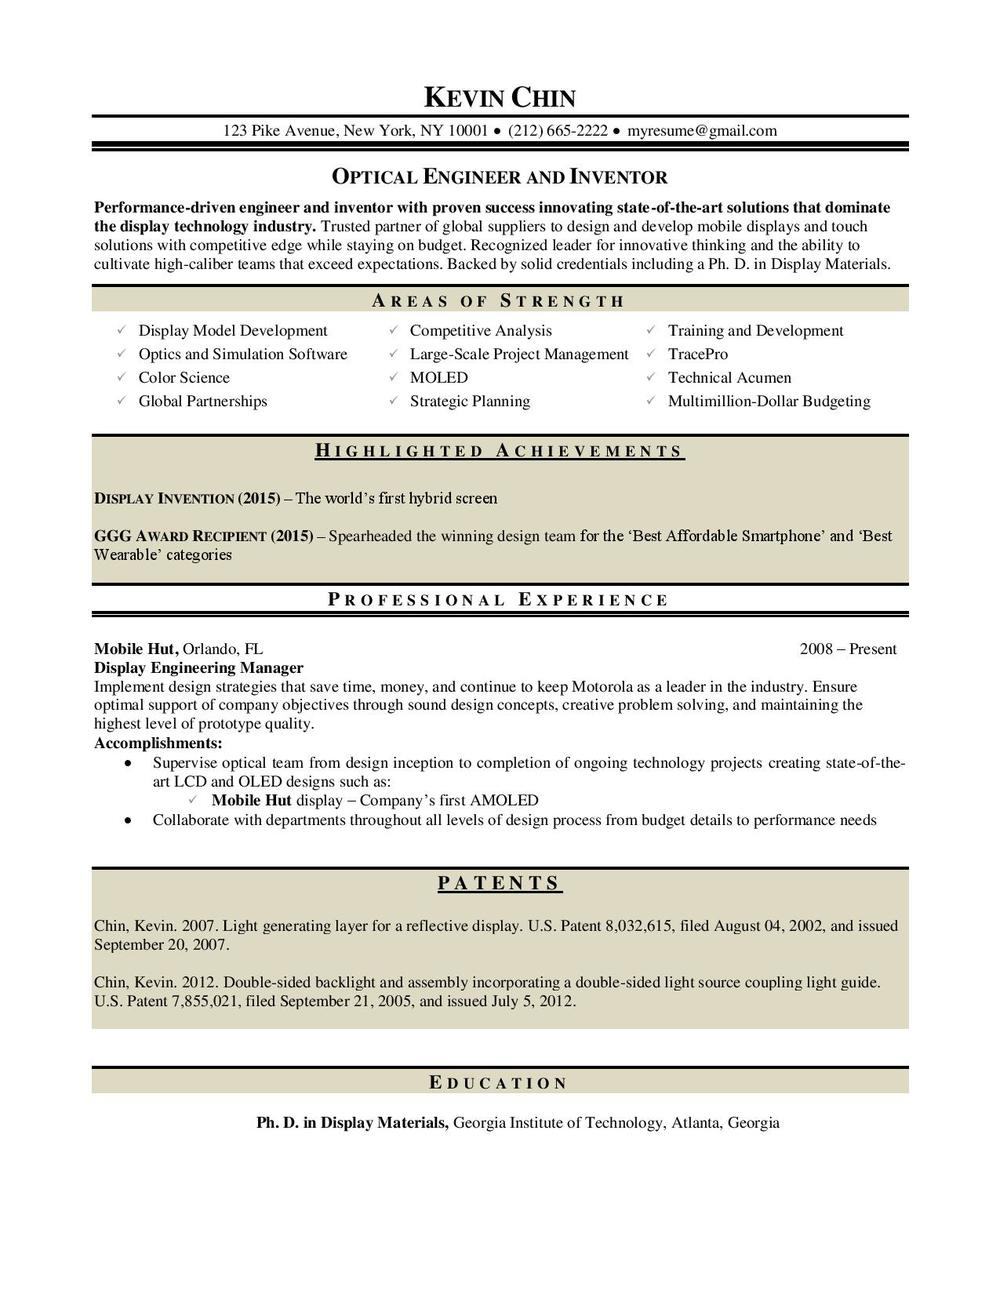 Industry Leading Executive And Professional Resume Writing Service Guarantee